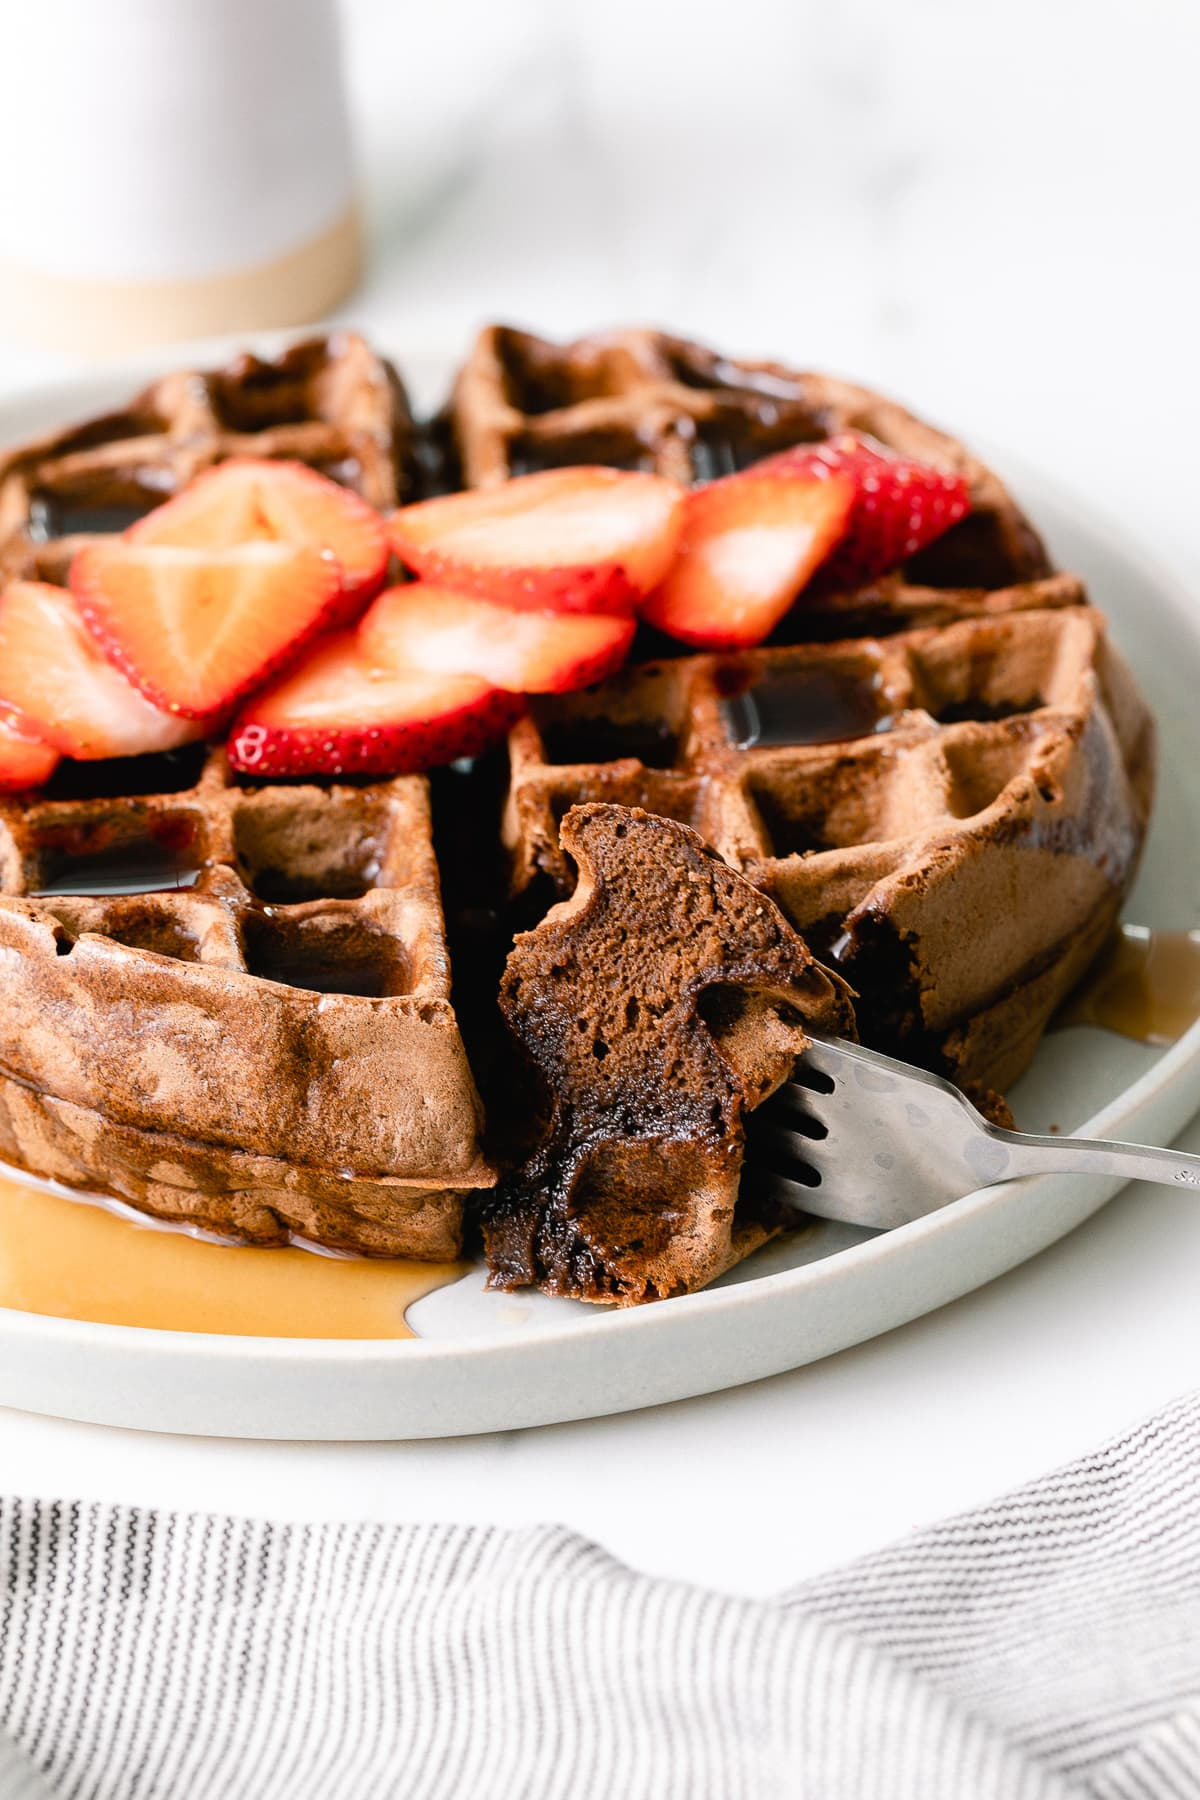 head on view of vegan chocolate belgian waffle on a plate with slice cut.